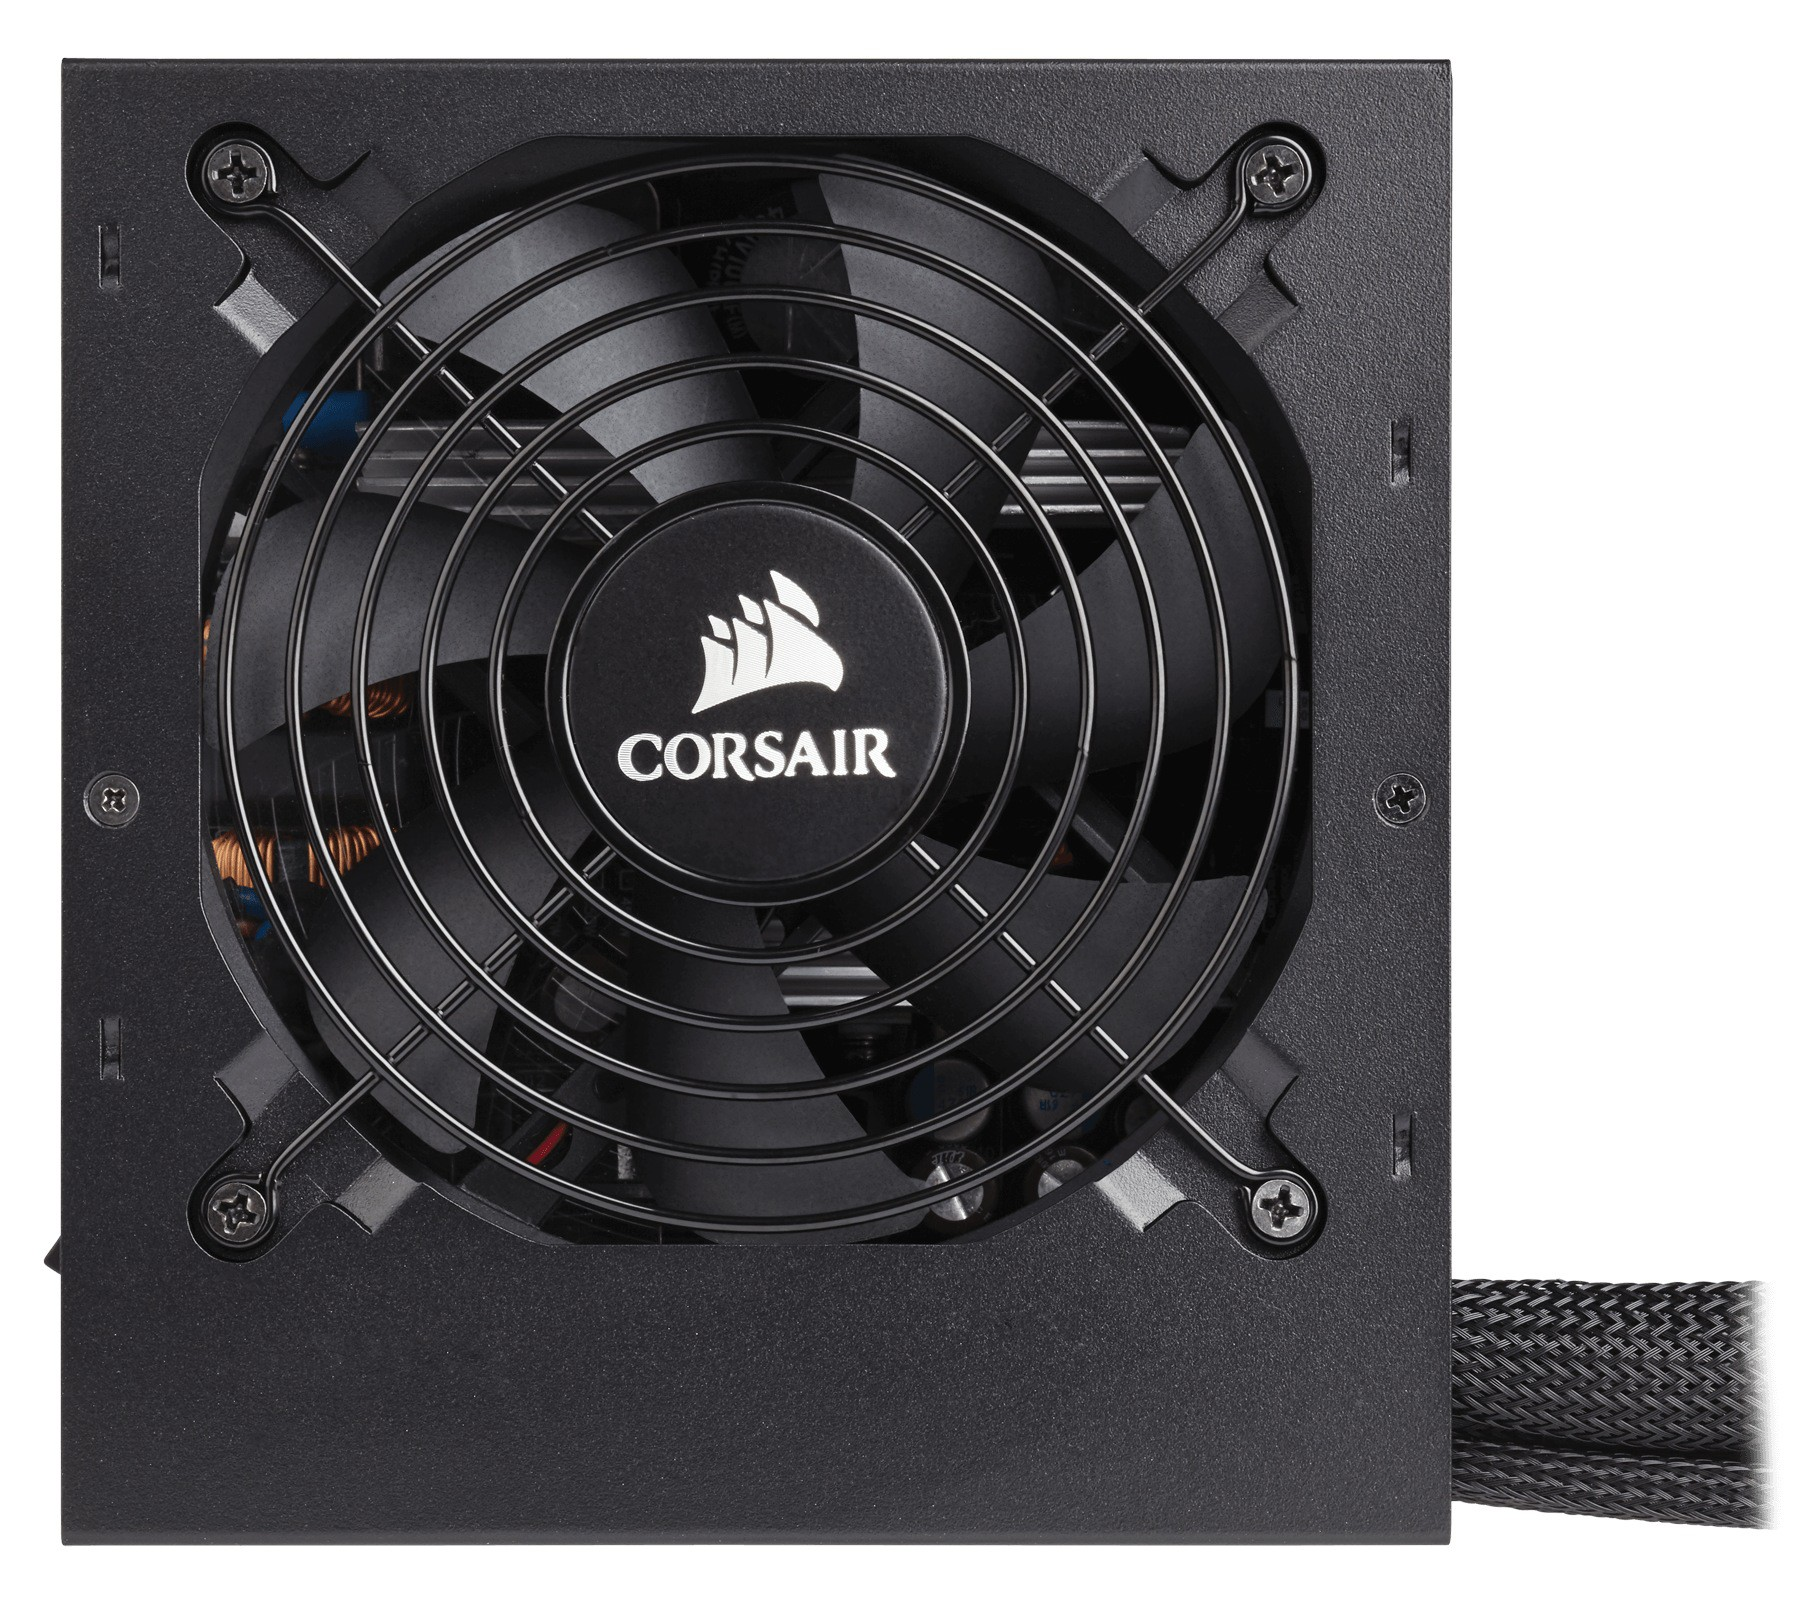 Блок питания 650W Corsair CX650 (CP-9020122-EU) (120mm, 24+8pin, 2x6/8pin, 4xMolex, 6xSATA, 80+ Bronze)